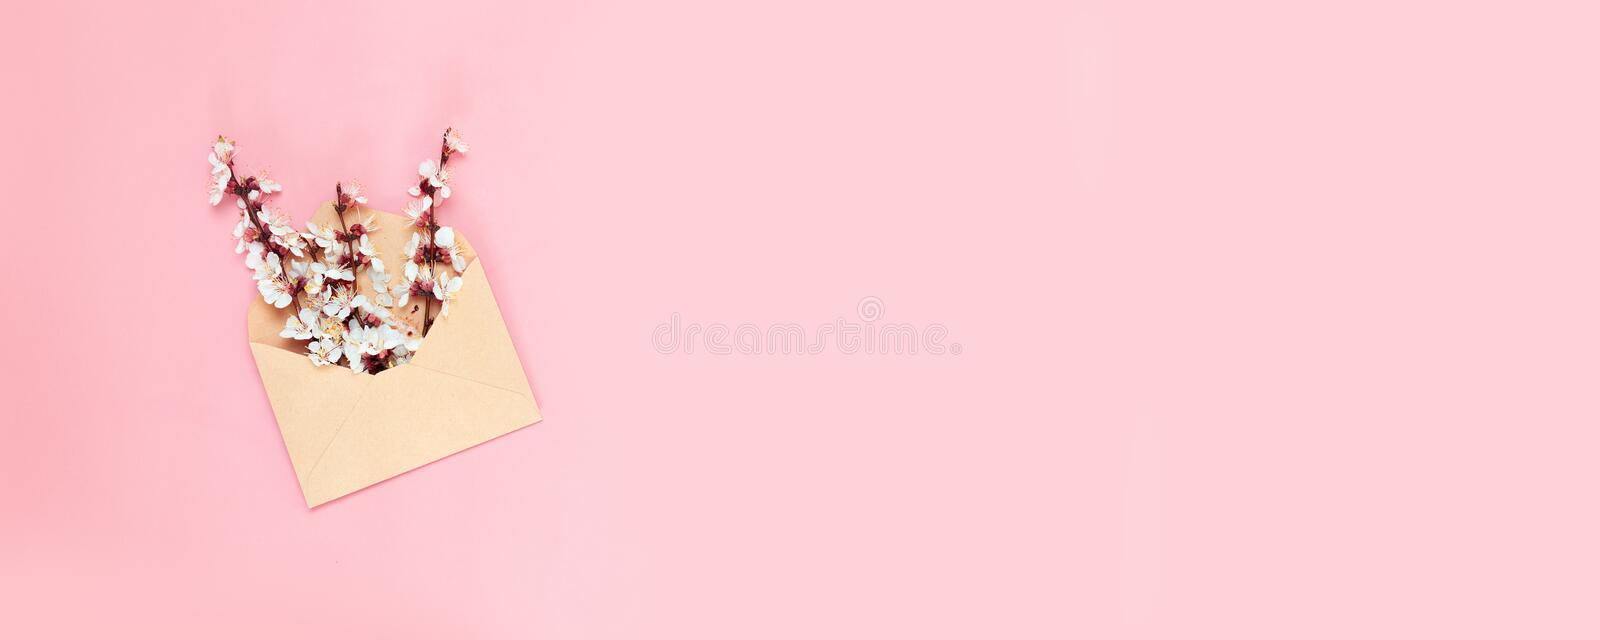 White blossoming branches in envelope on pink background. Top view, greeting card. Opened craft paper envelope full of spring blossom flowers on pink background royalty free stock photos